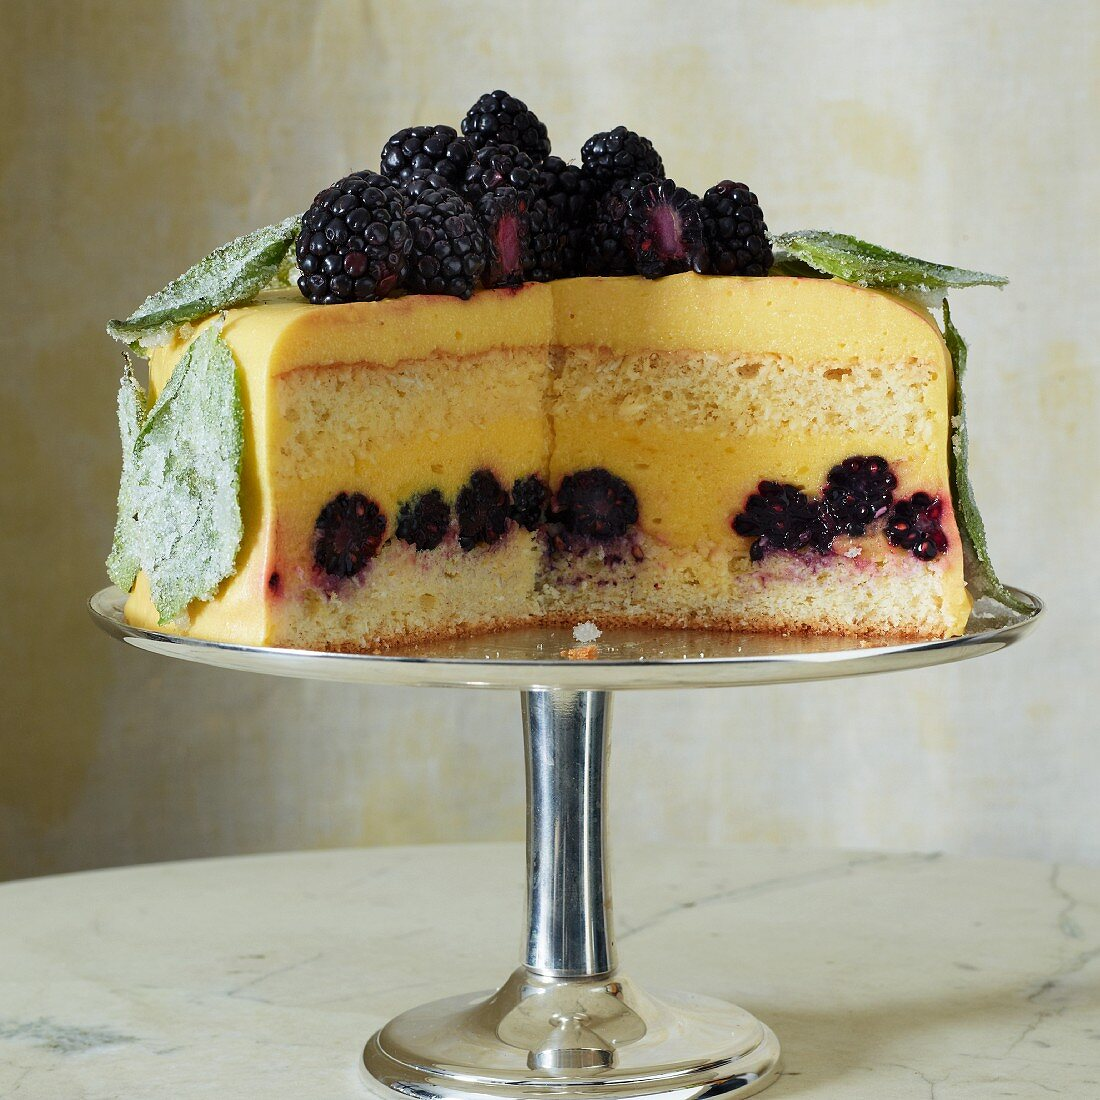 An orange and basil cake with blackberry, sliced